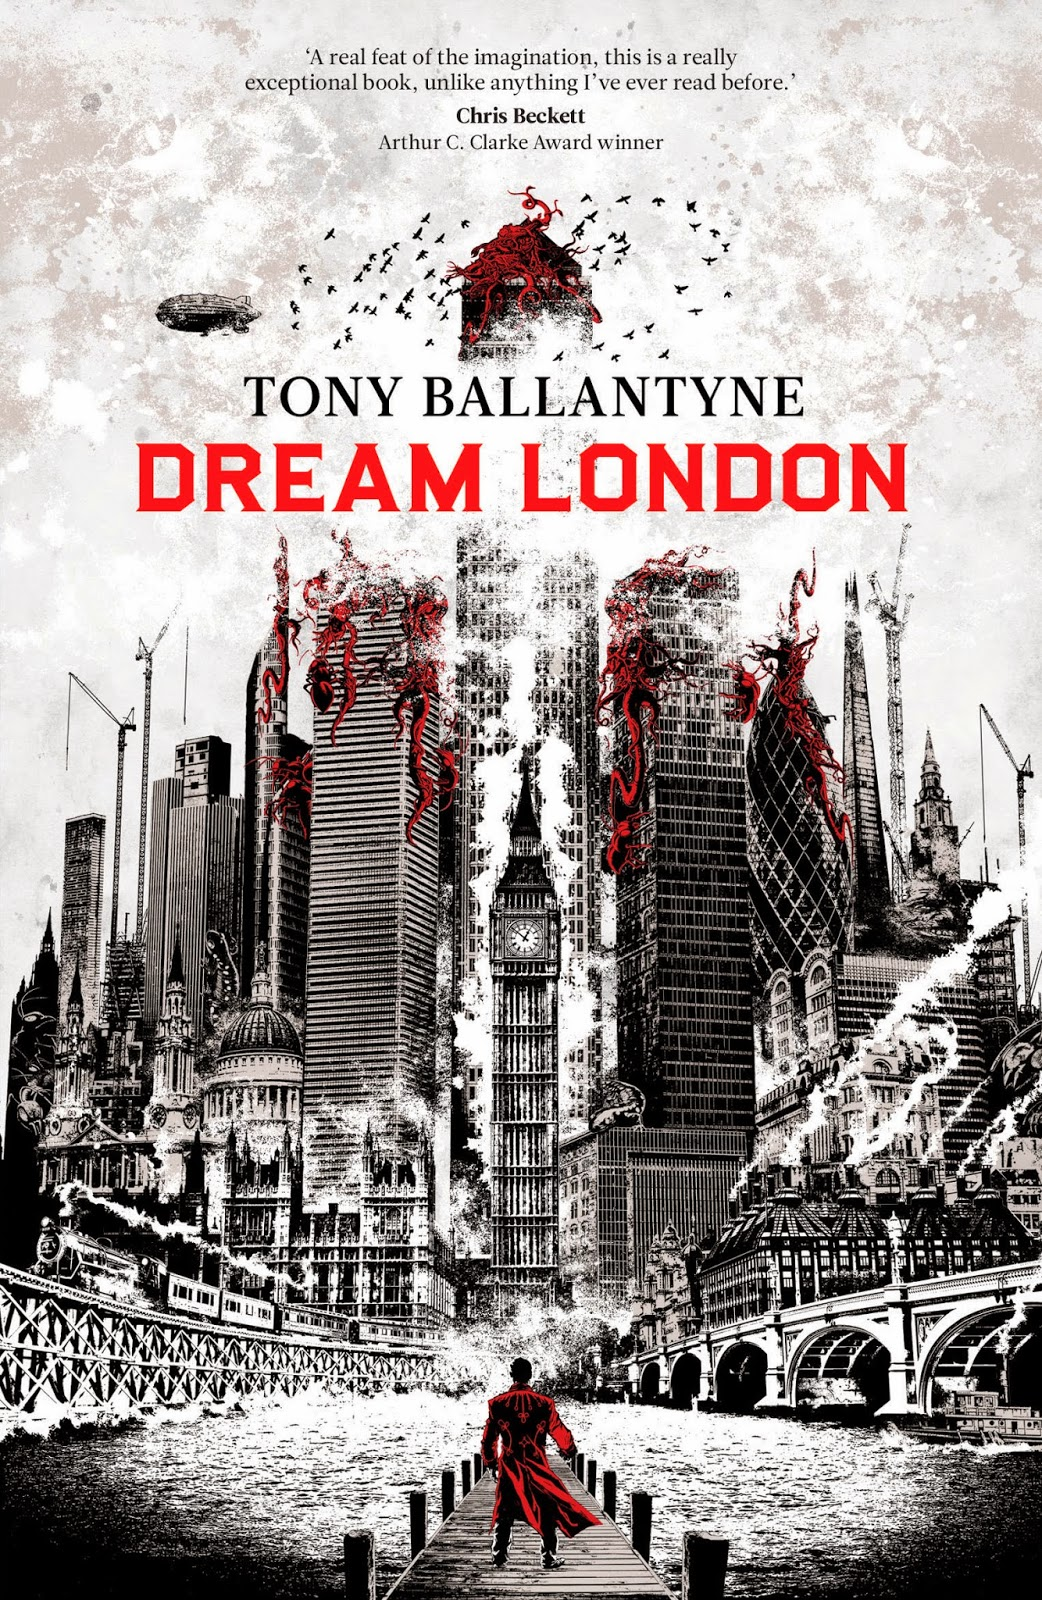 http://www.amazon.co.uk/Dream-London-Tony-Ballantyne/dp/1781081735/ref=sr_1_1?s=books&ie=UTF8&qid=1398158215&sr=1-1&keywords=Dream+London